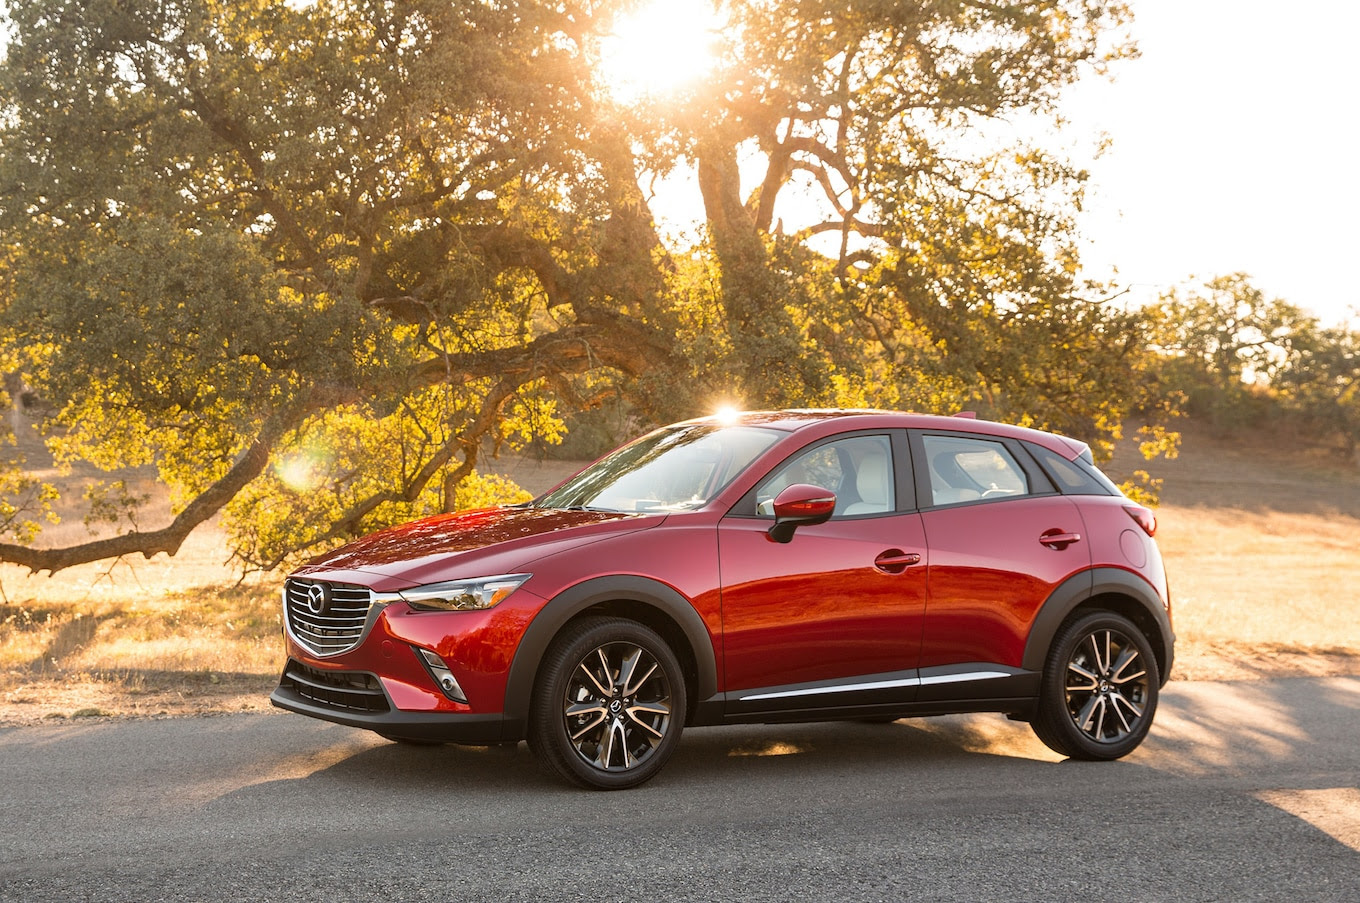 2017 Mazda CX3 Reviews and Rating  Motor Trend